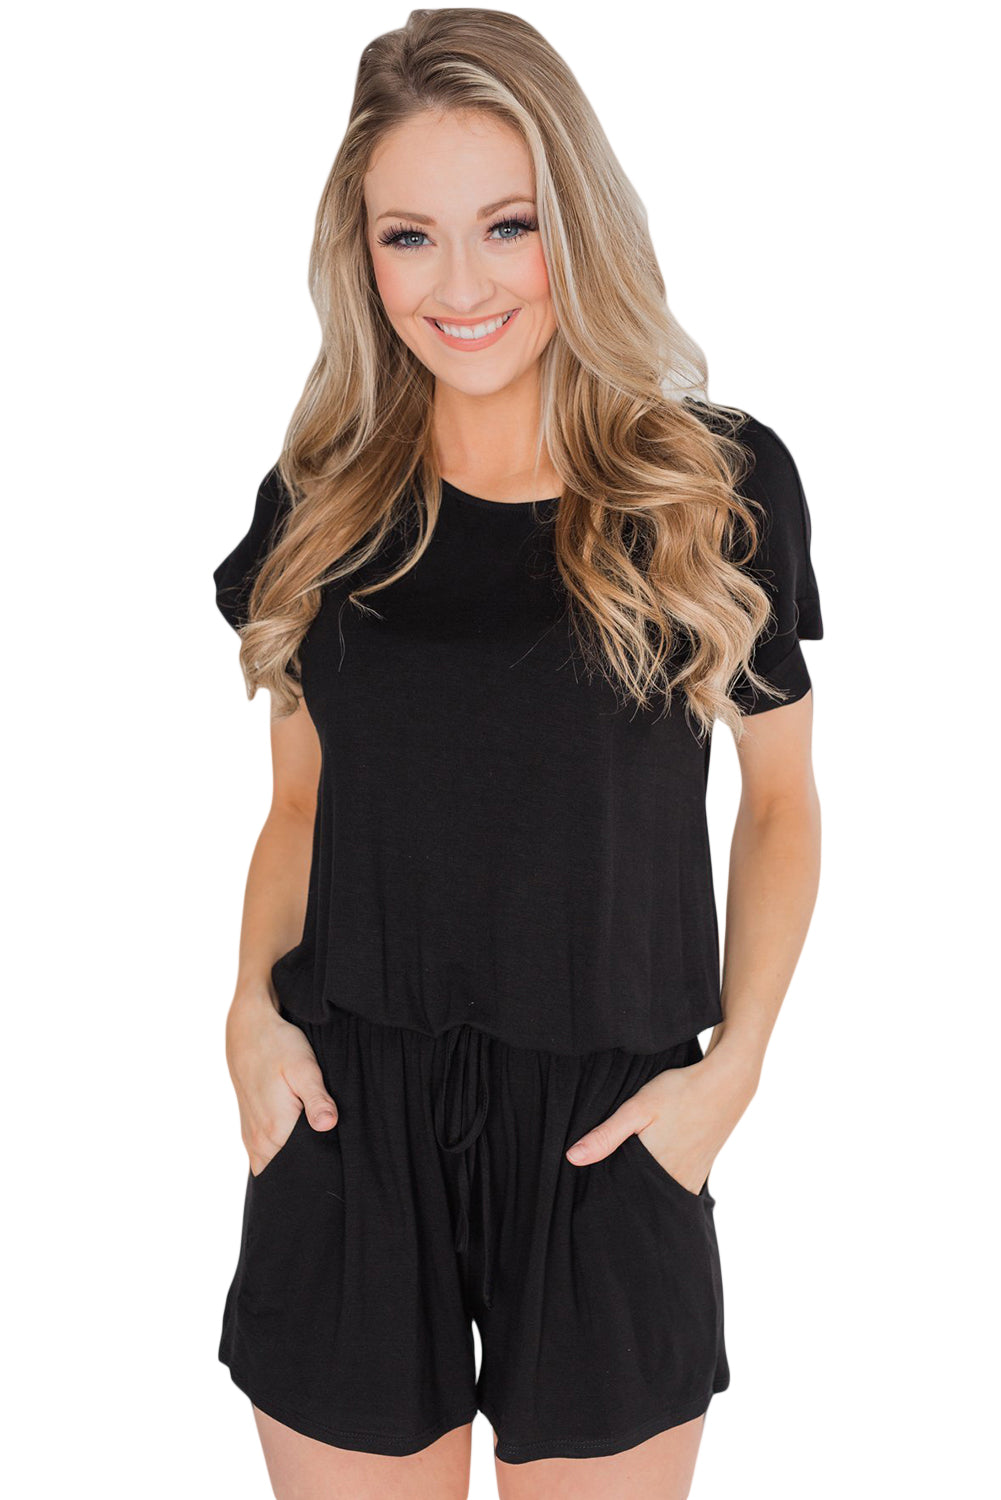 Black Short Sleeve Drawstring Romper